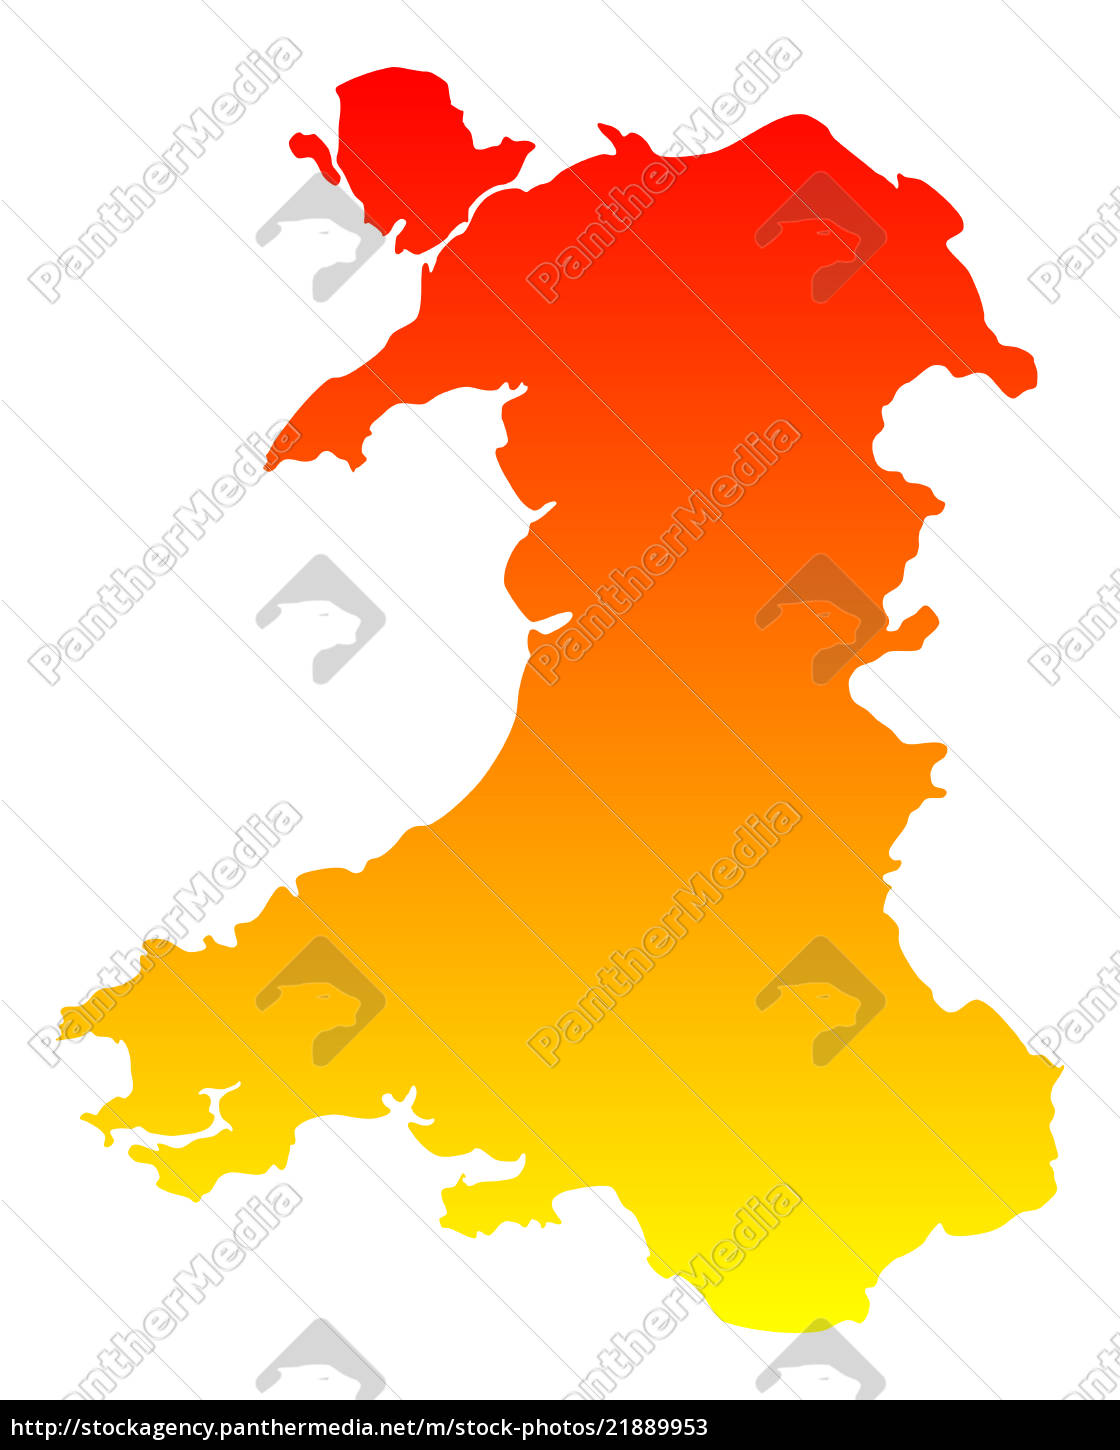 Kort Over Wales Stockphoto 21889953 Panthermedia Billedbureau